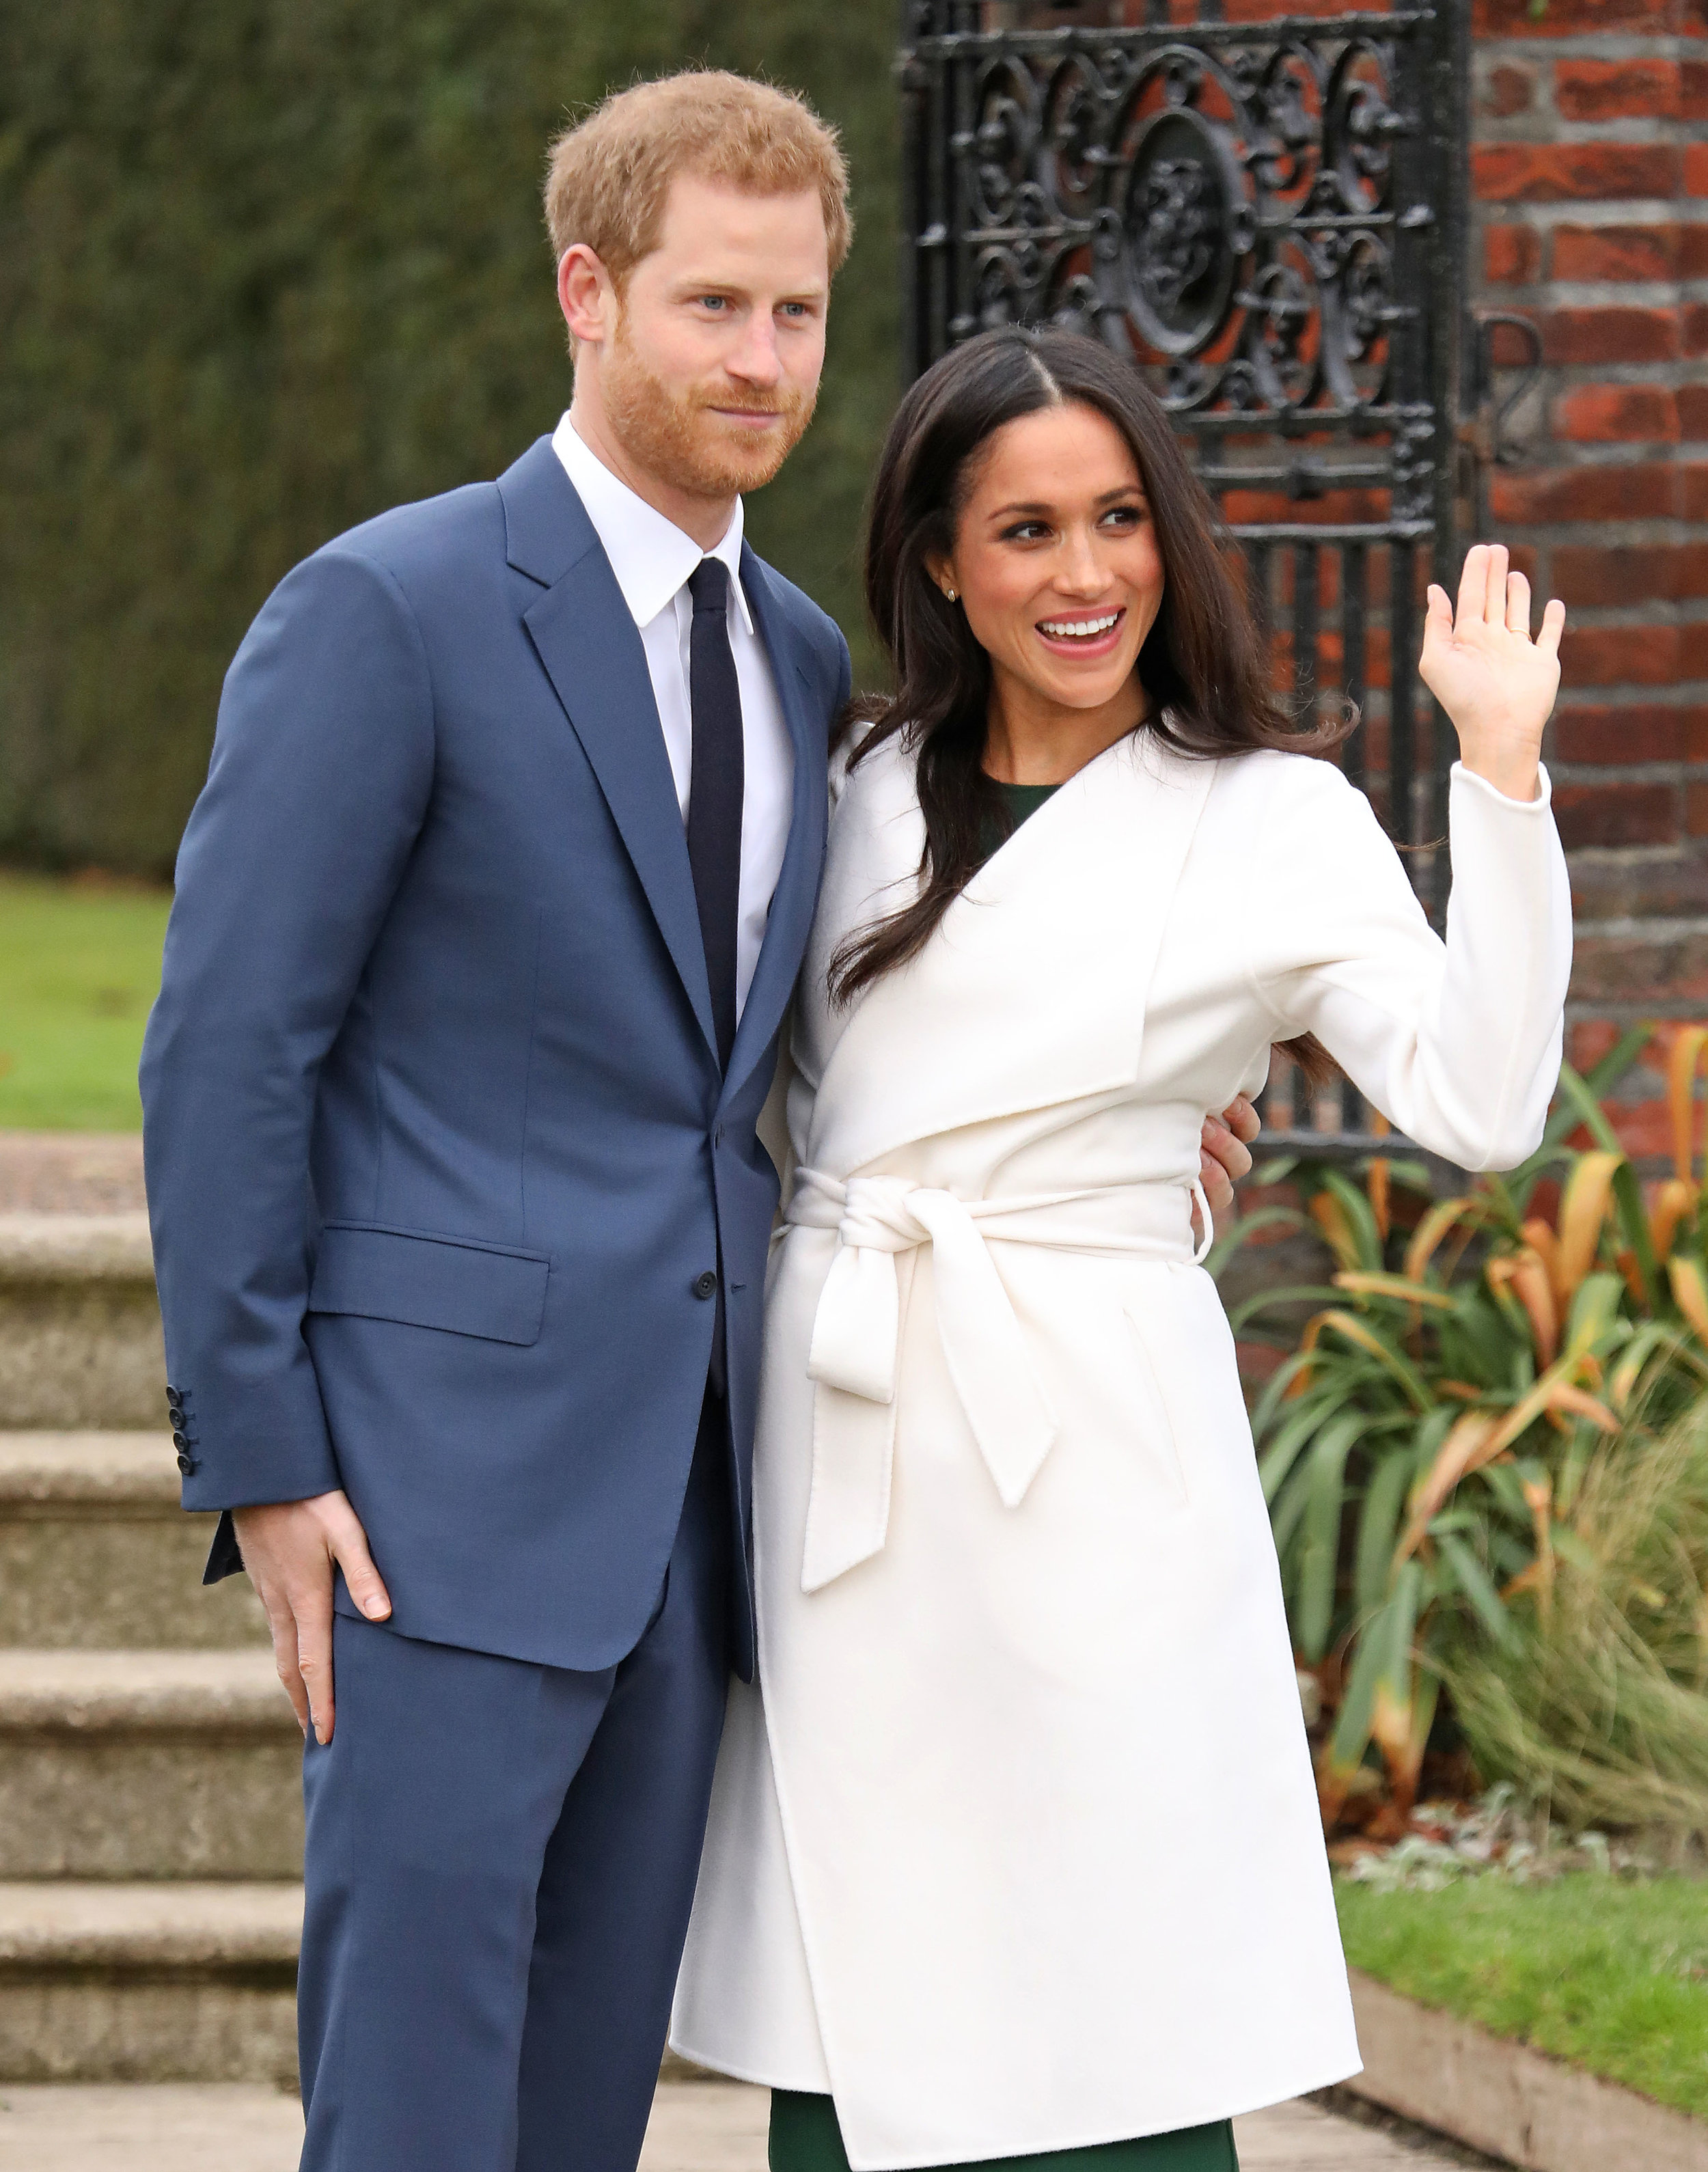 PHT_B5327_prince_harry_engagement_14412.JPG